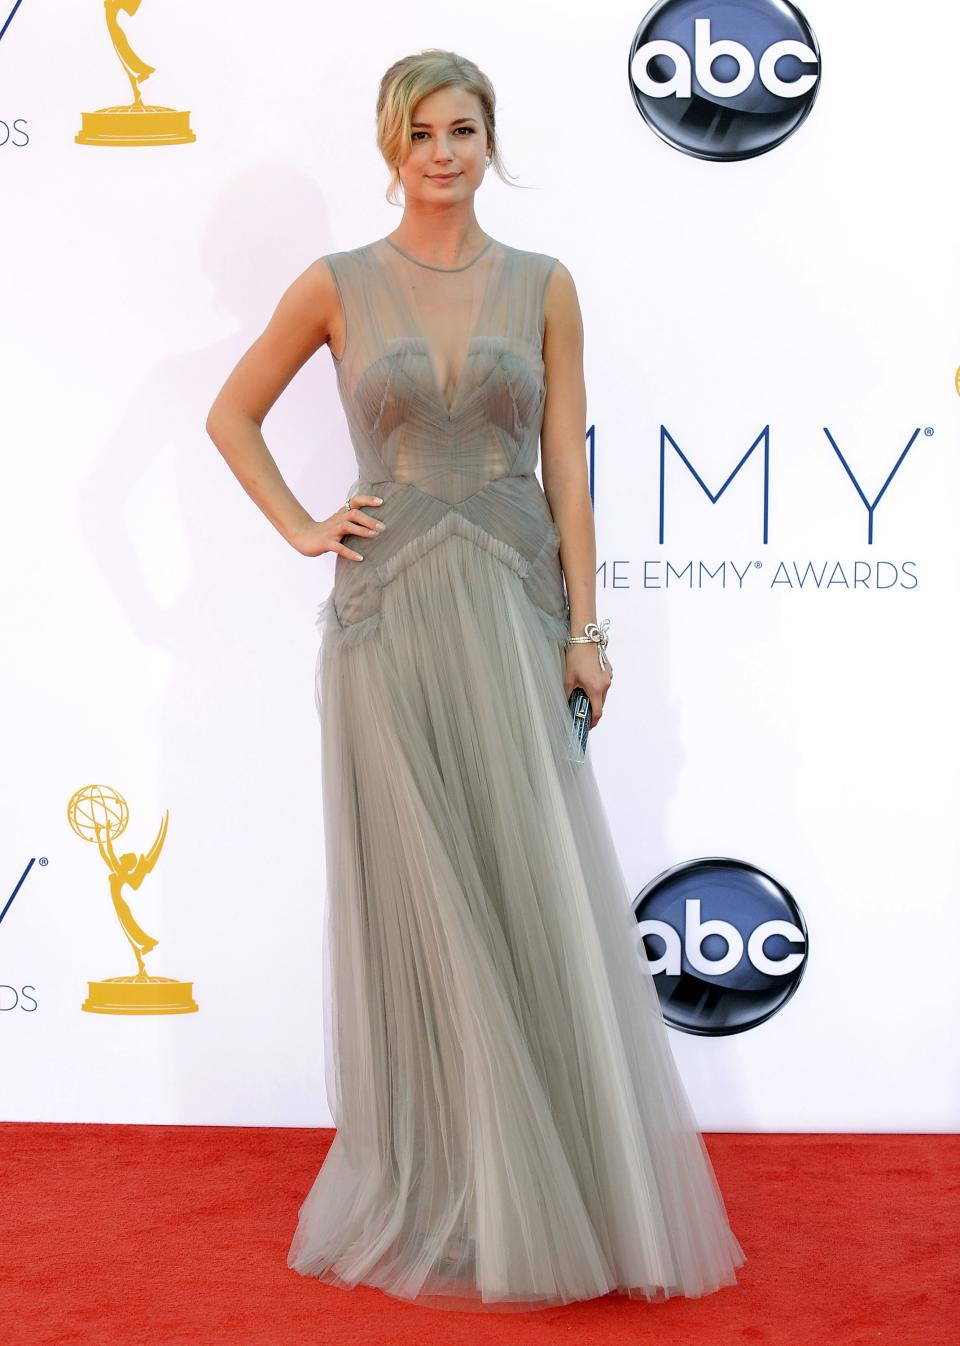 Actress Emily VanCamp arrives at the 64th Primetime Emmy Awards at the Nokia Theatre on Sunday, Sept. 23, 2012, in Los Angeles.  (Photo by Jordan Strauss/Invision/AP)